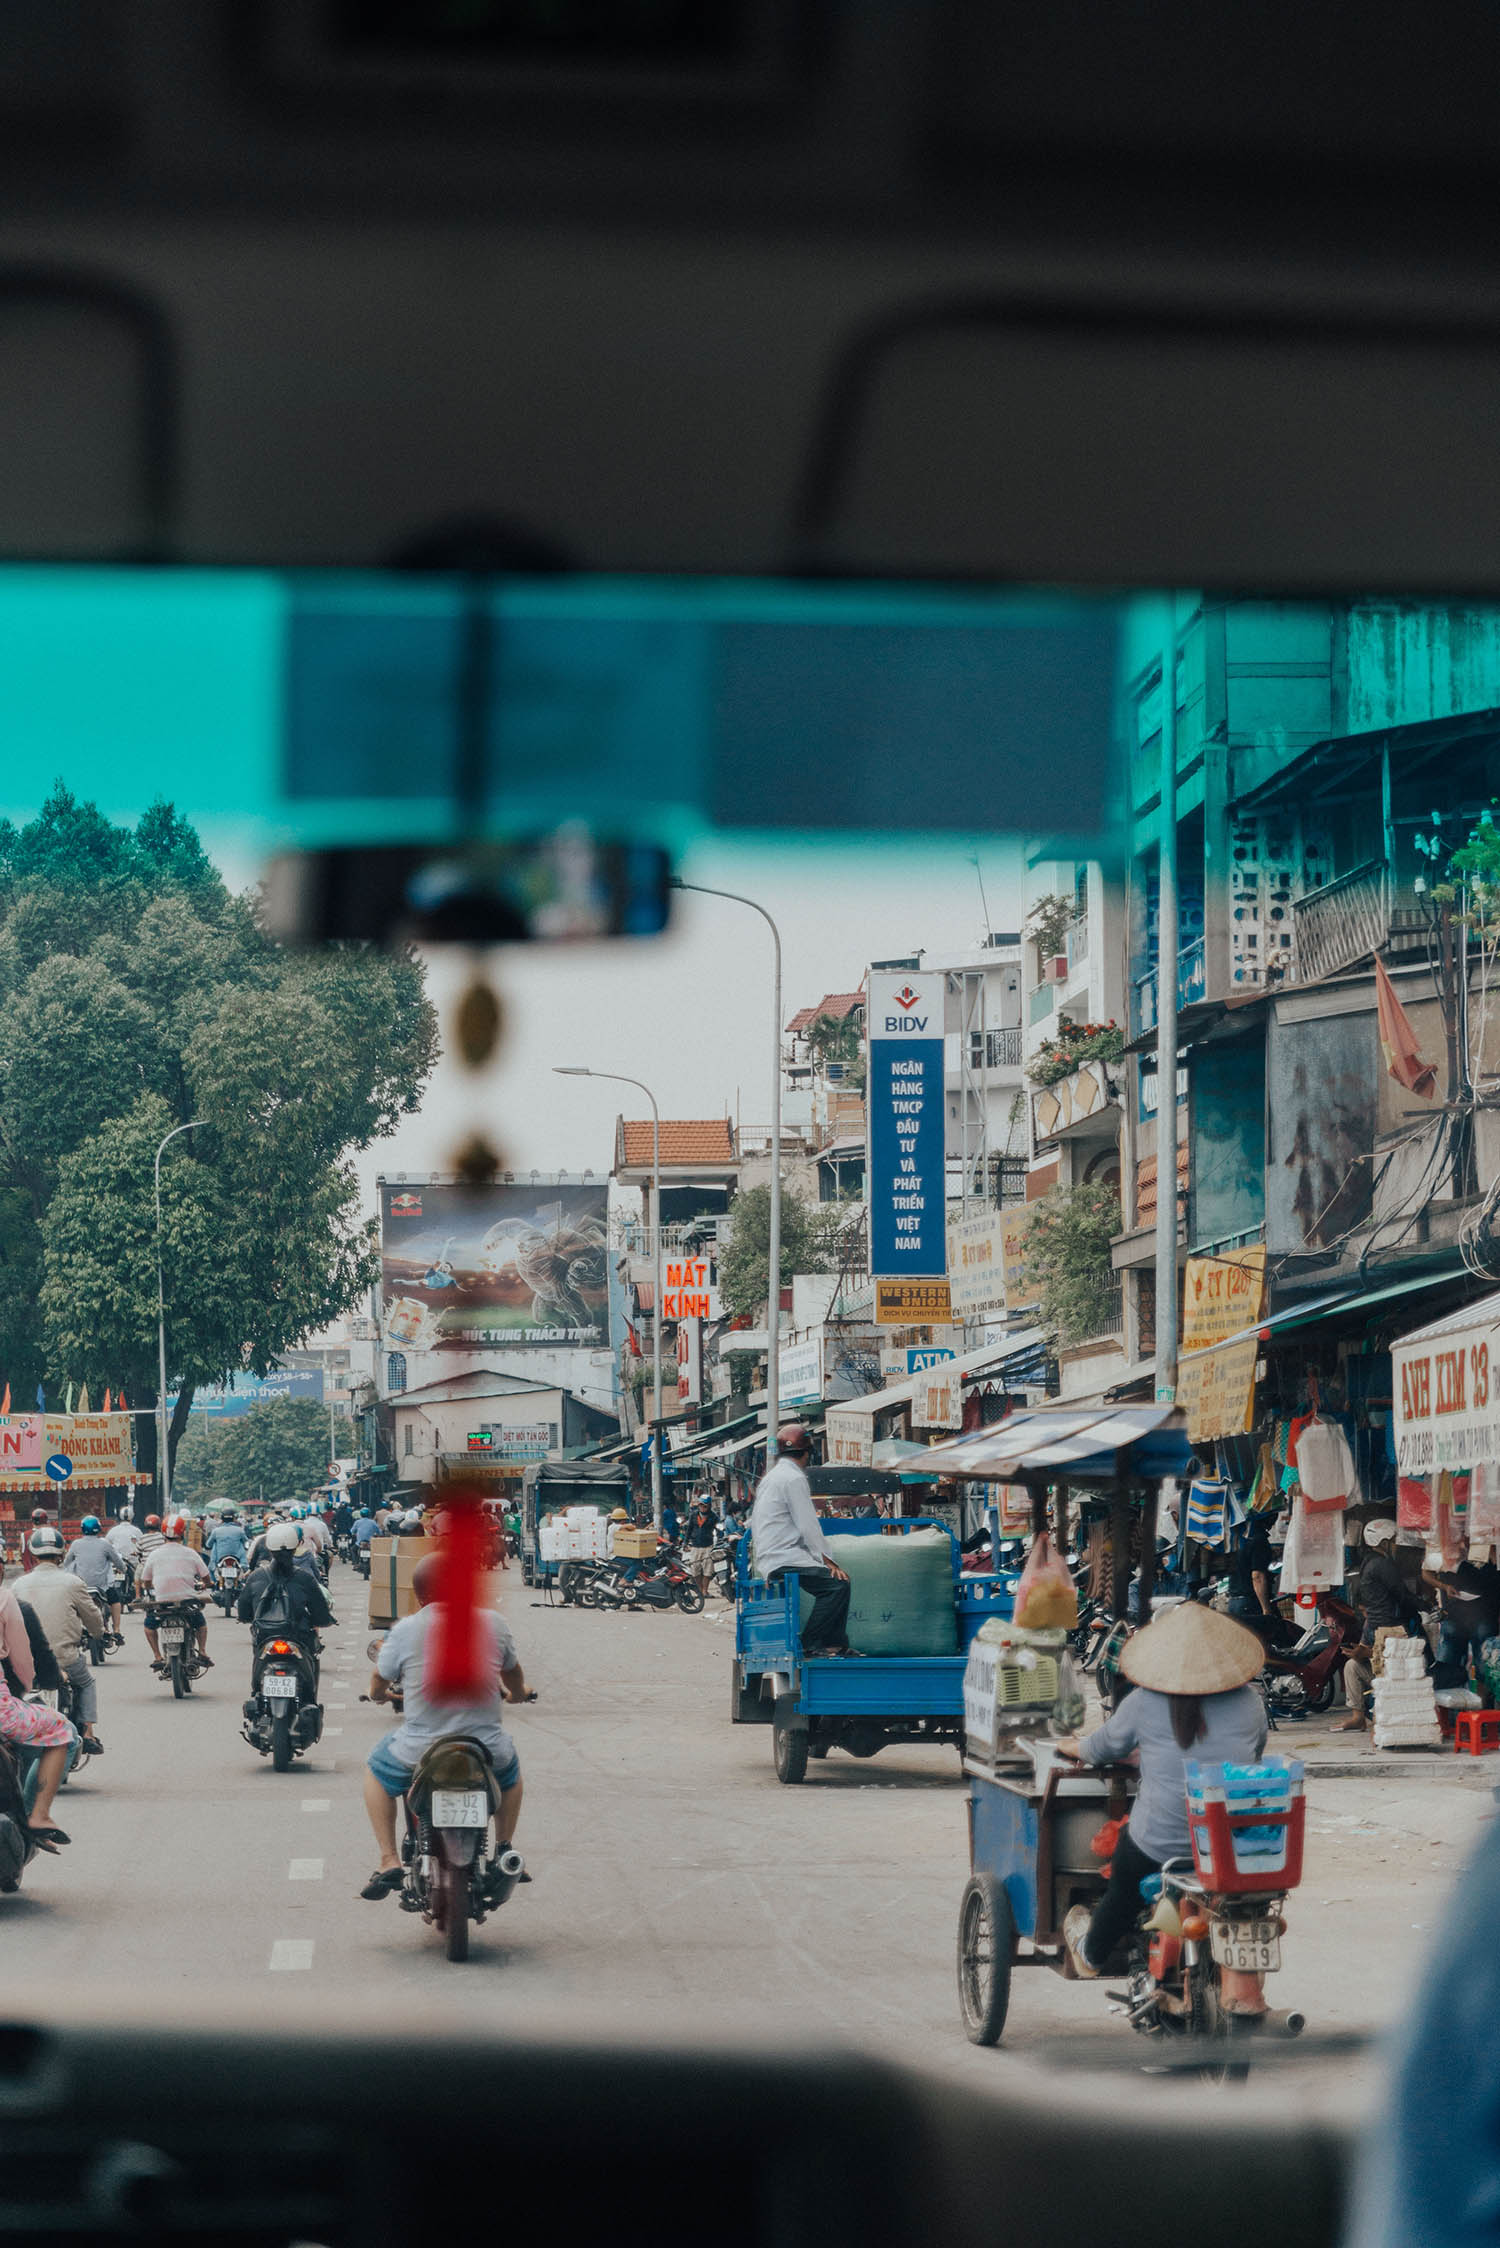 Adaras Guide: Things to Do in Ho Chi Minh City